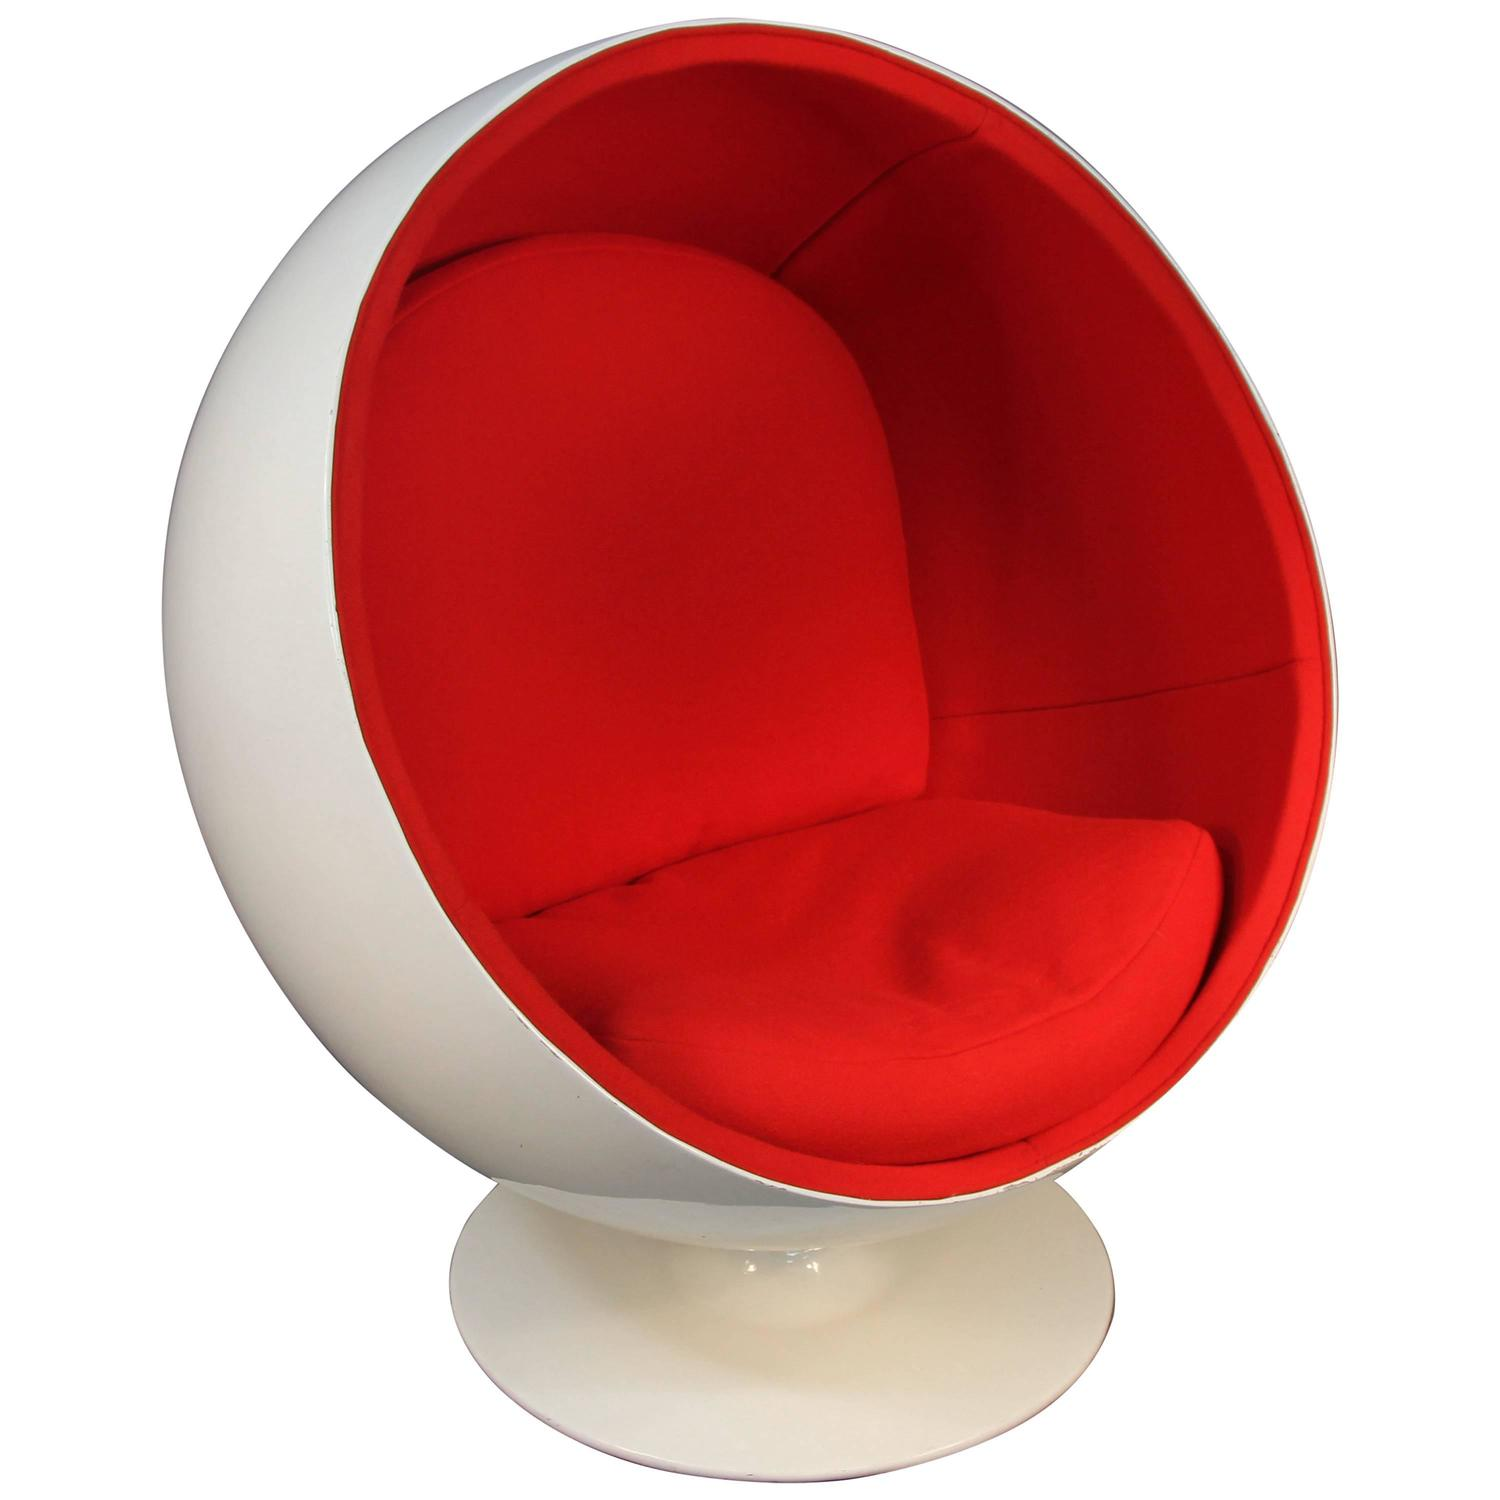 eero aarnio ball chair newly upholstered 1960s at 1stdibs. Black Bedroom Furniture Sets. Home Design Ideas